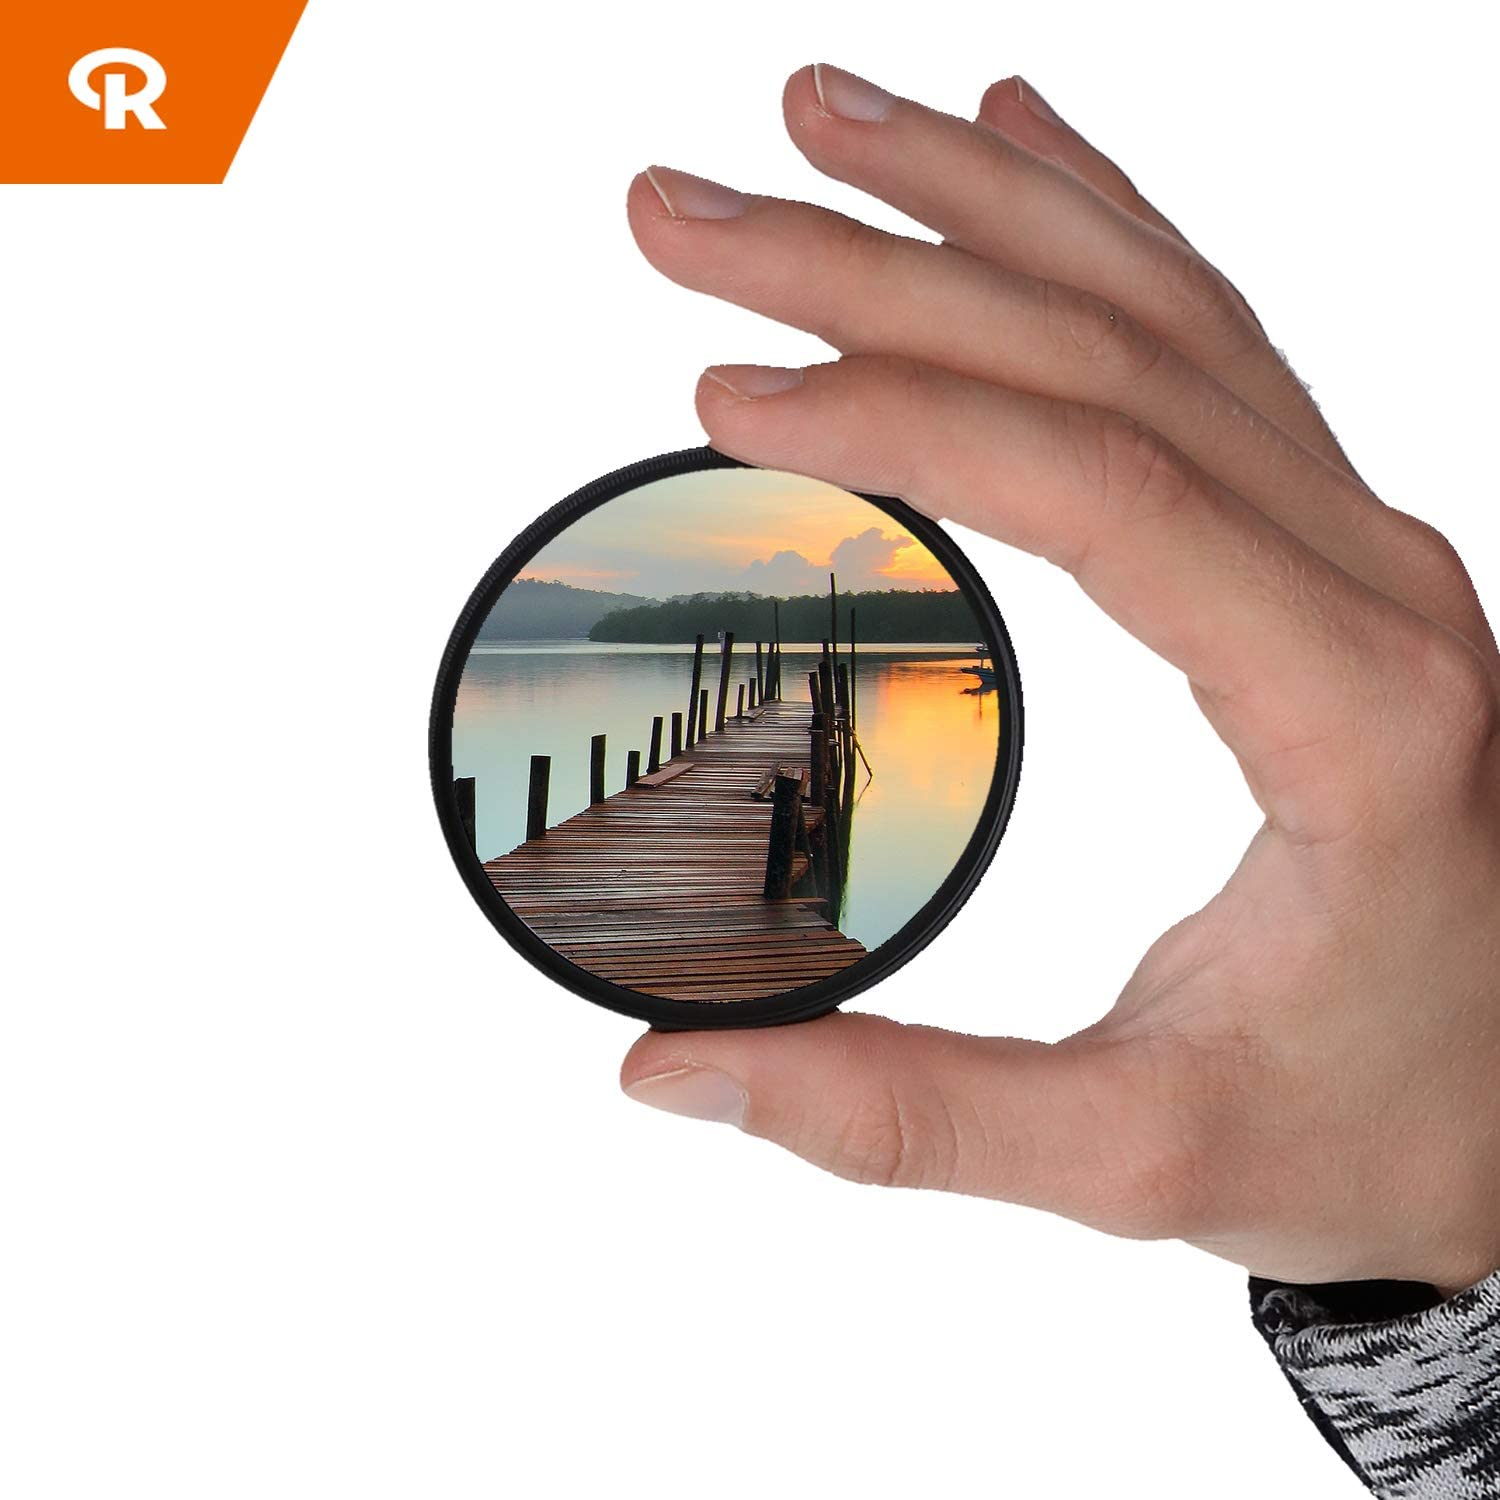 Ultra Slim UV Filter 28 Layer Multi Row Coated Ultraviolet Protection Filter Rollei Saturn Corning L41 L41 49mm - Gorilla Glass Gorilla Glass UV Protection Lens Filter